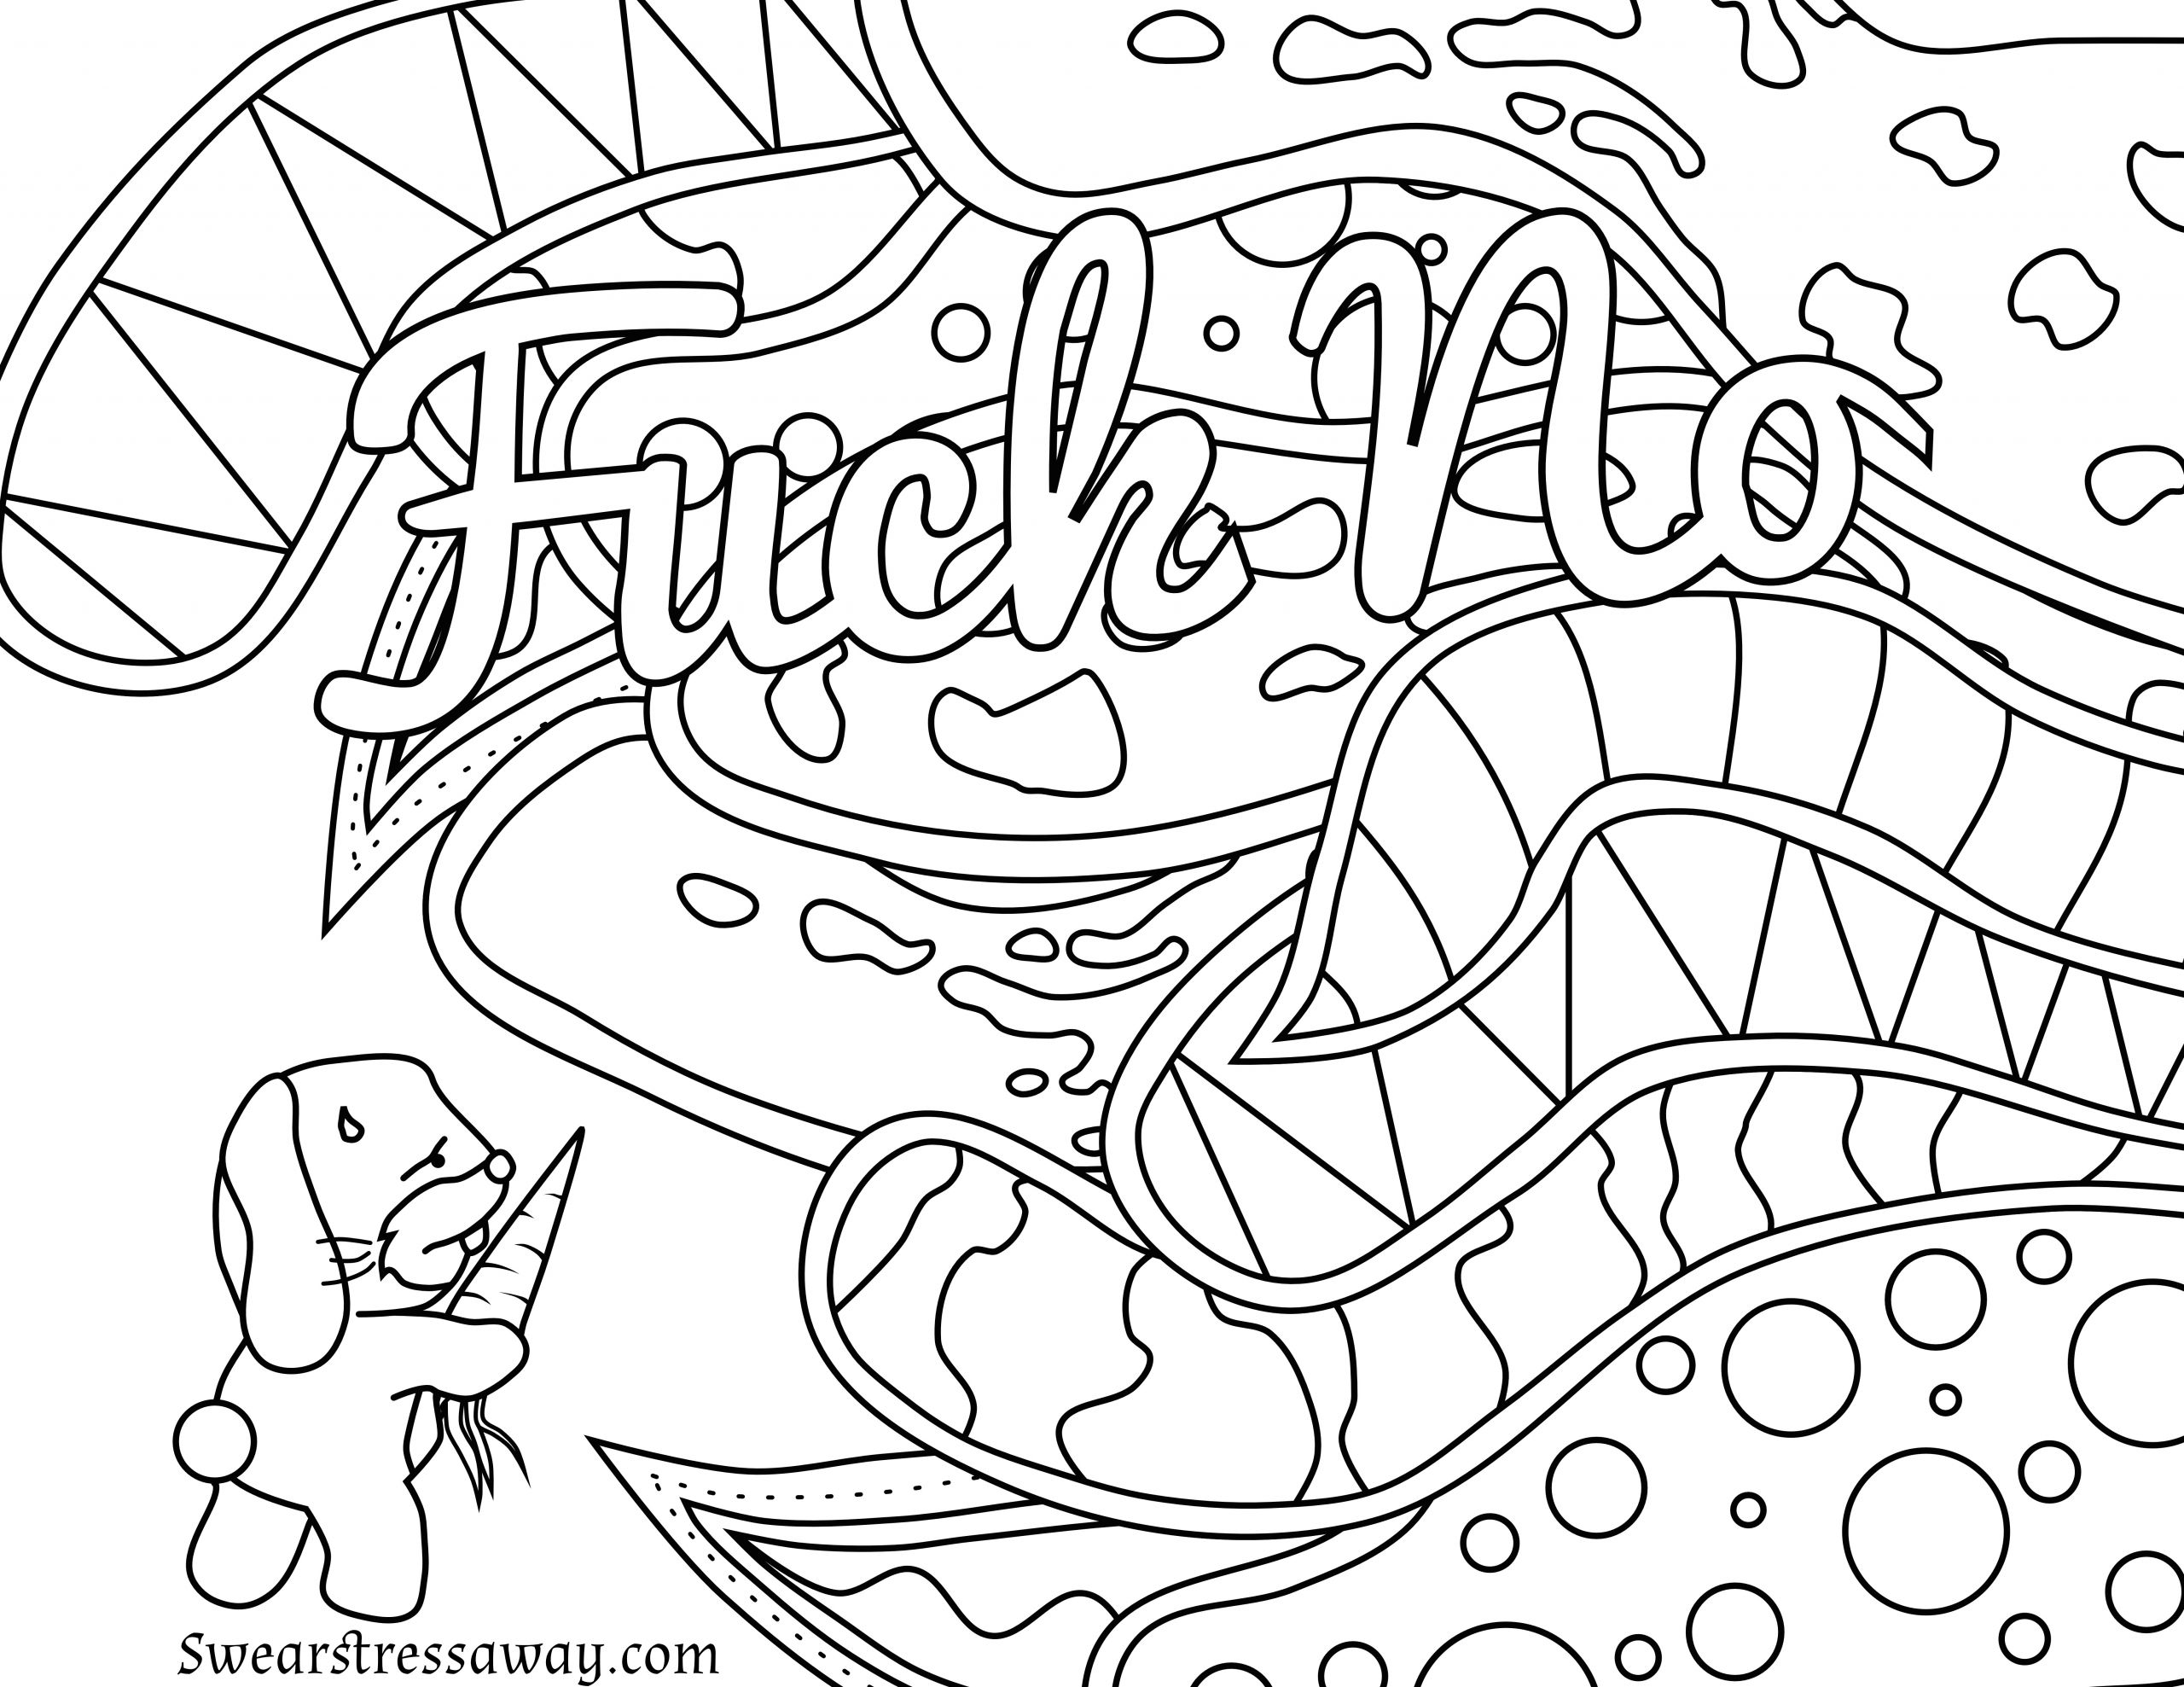 Adult Coloring Pages Swear Words  Swear Word Coloring Pages Printable at GetColorings